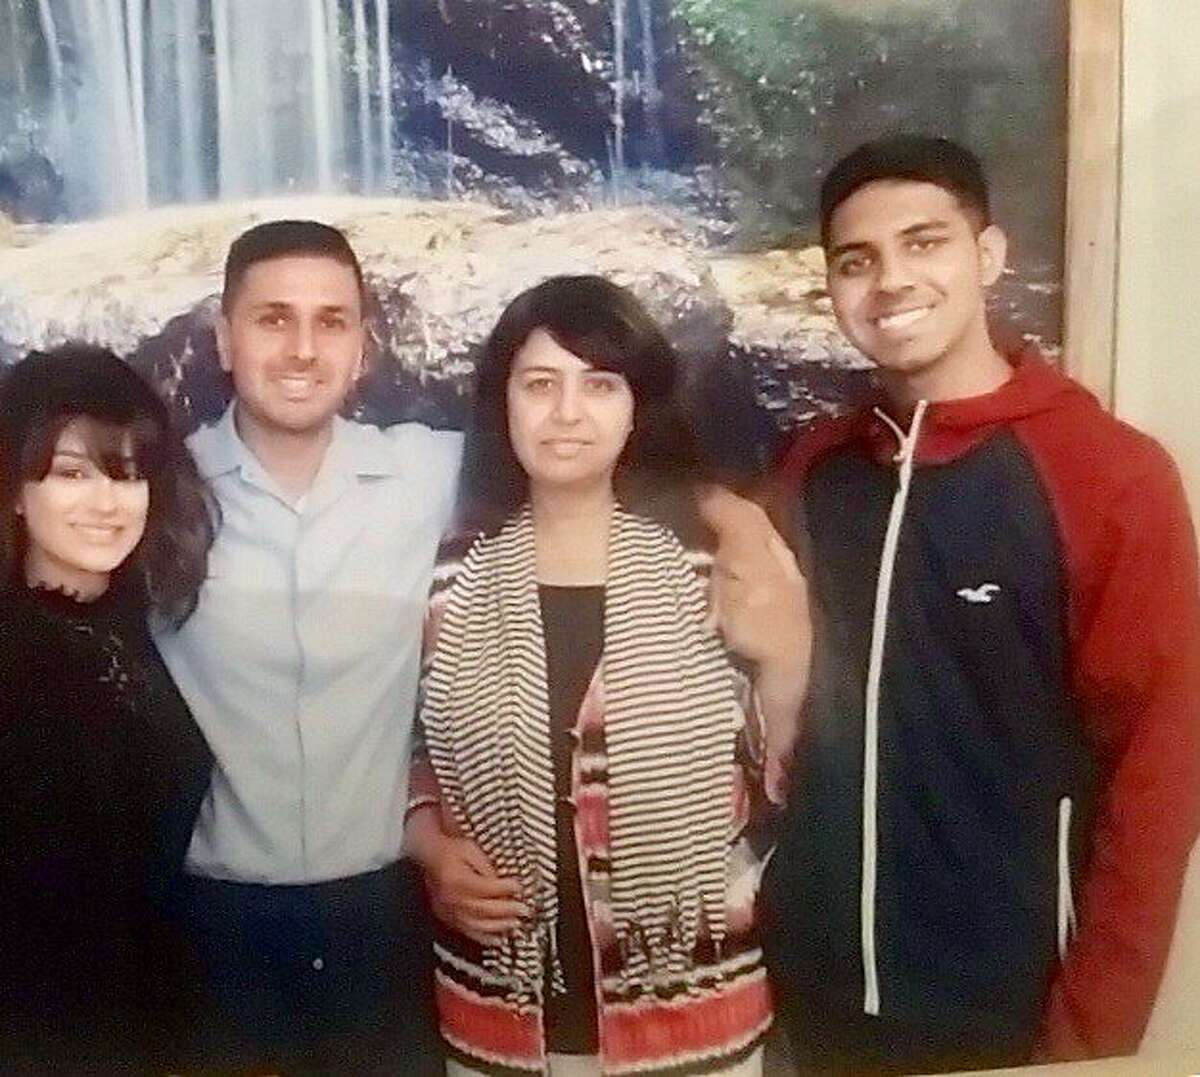 Adnan Khan, second from the left, poses with his family at San Quentin State Prison in June 2017.